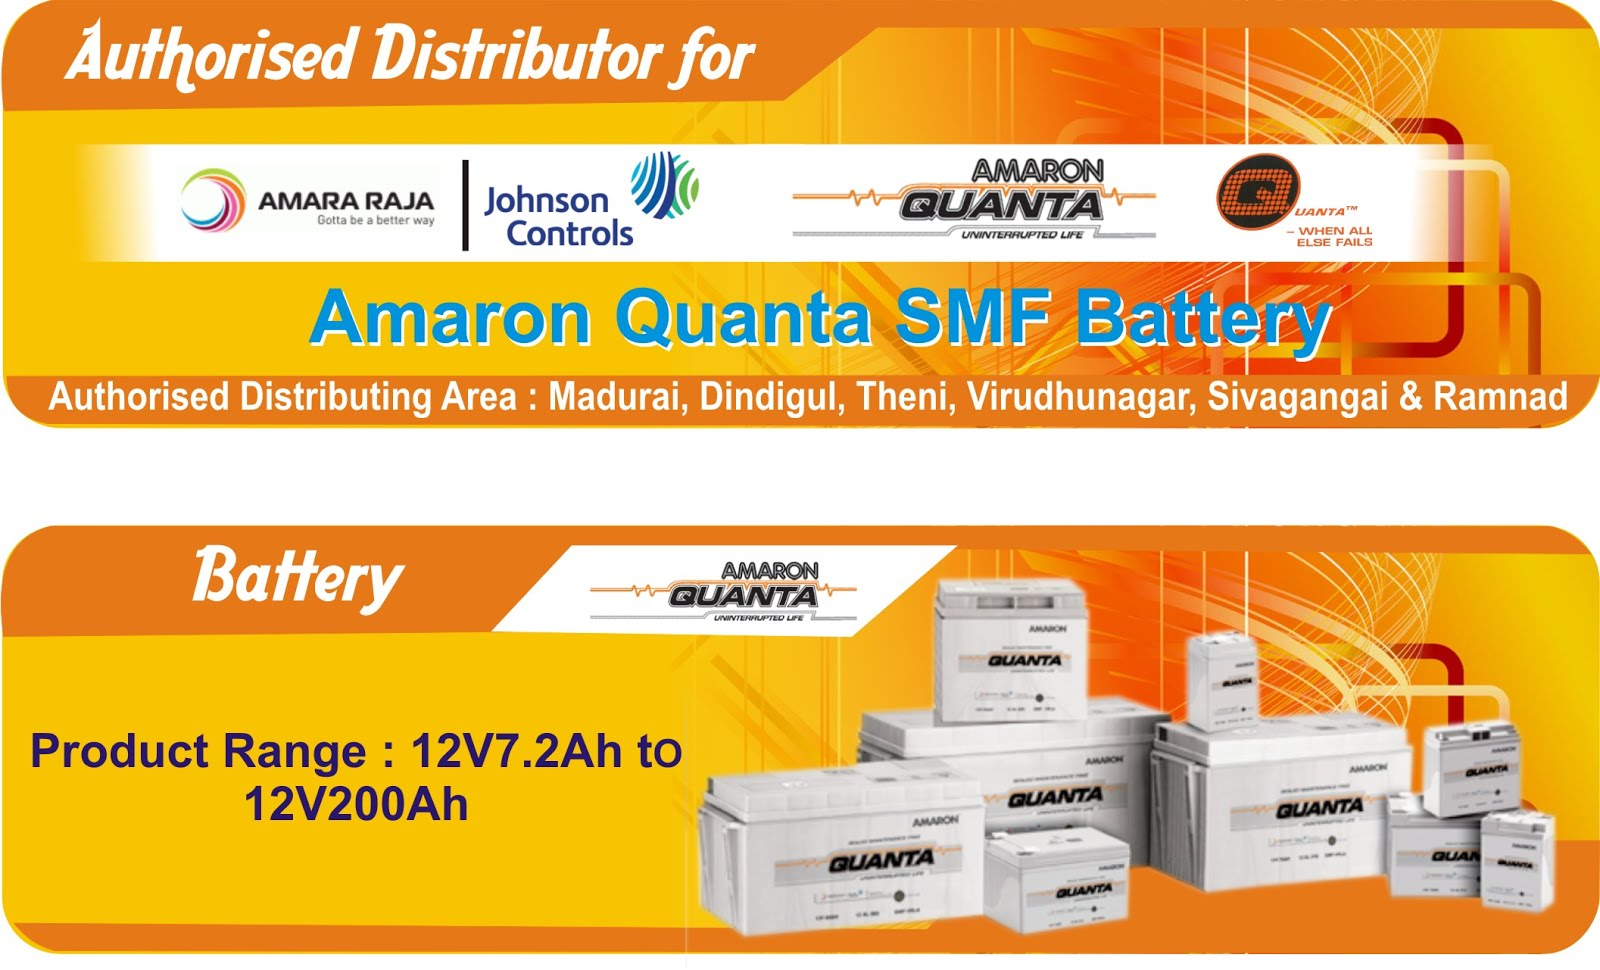 WE ARE AUTHORIZED DEALERS IN AMARON INVERTERS & QUANTA BATTERIES IN NIGERIA